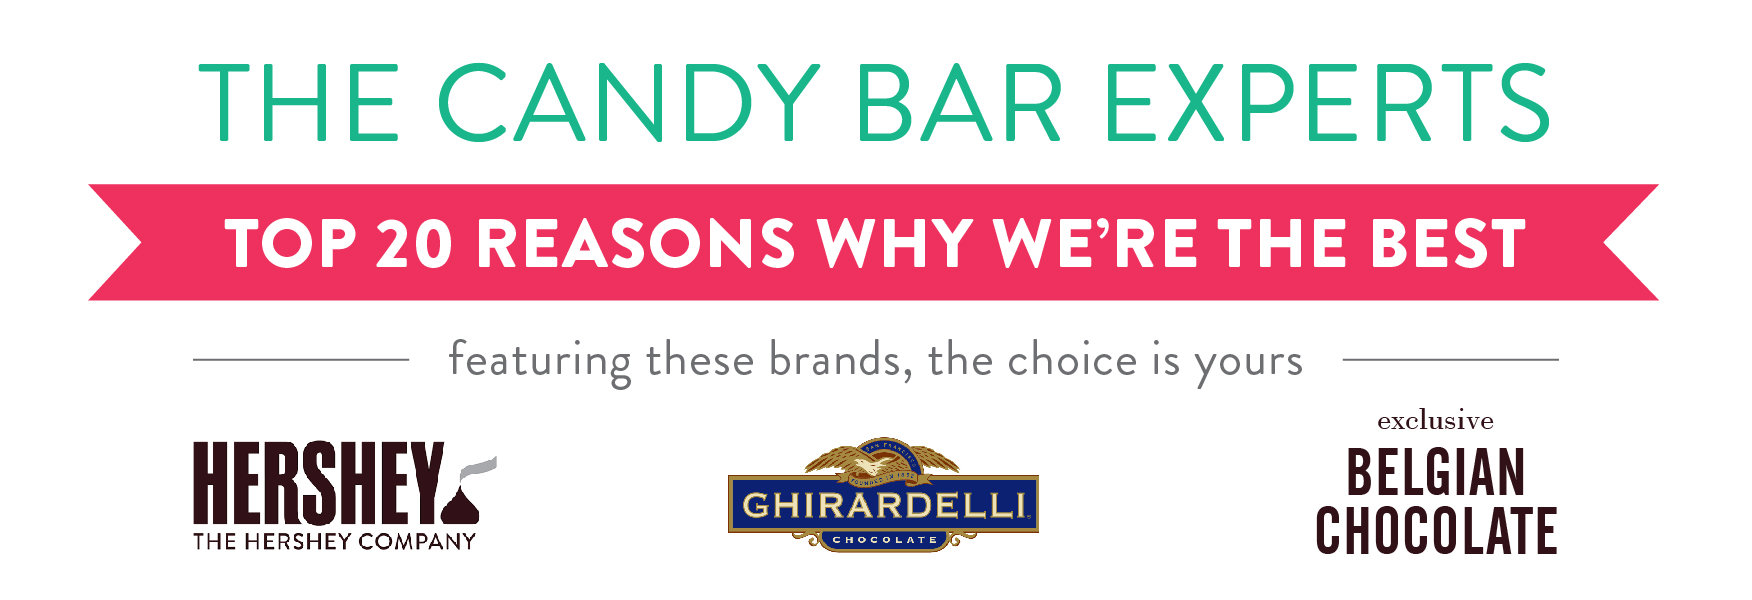 We're the Candy Bar Experts